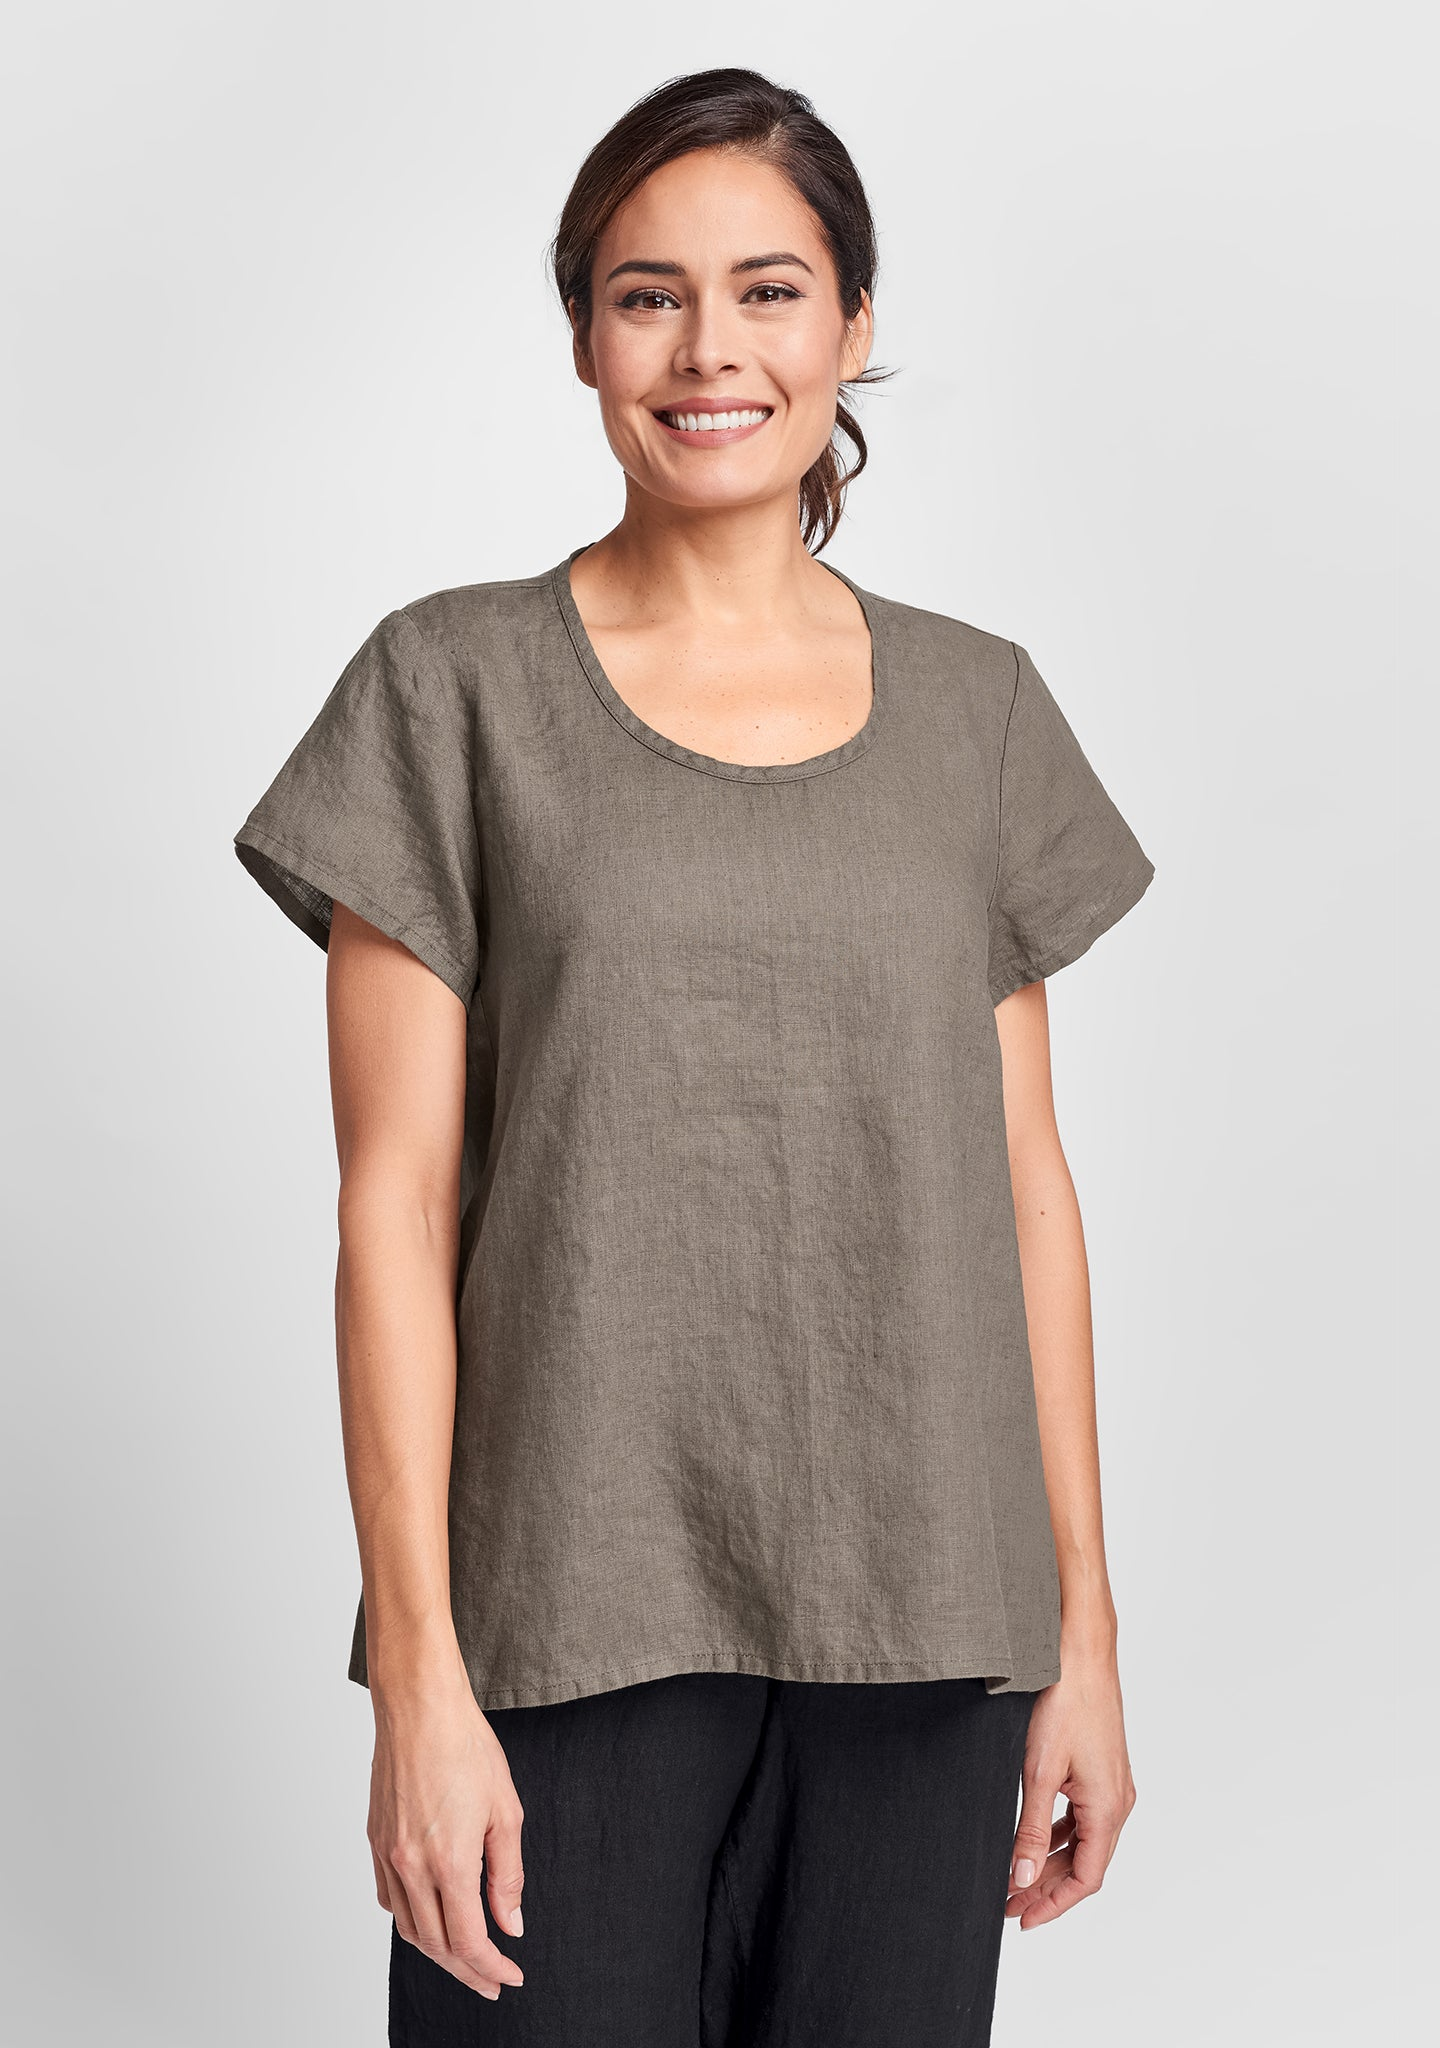 weightless tee linen t shirt brown